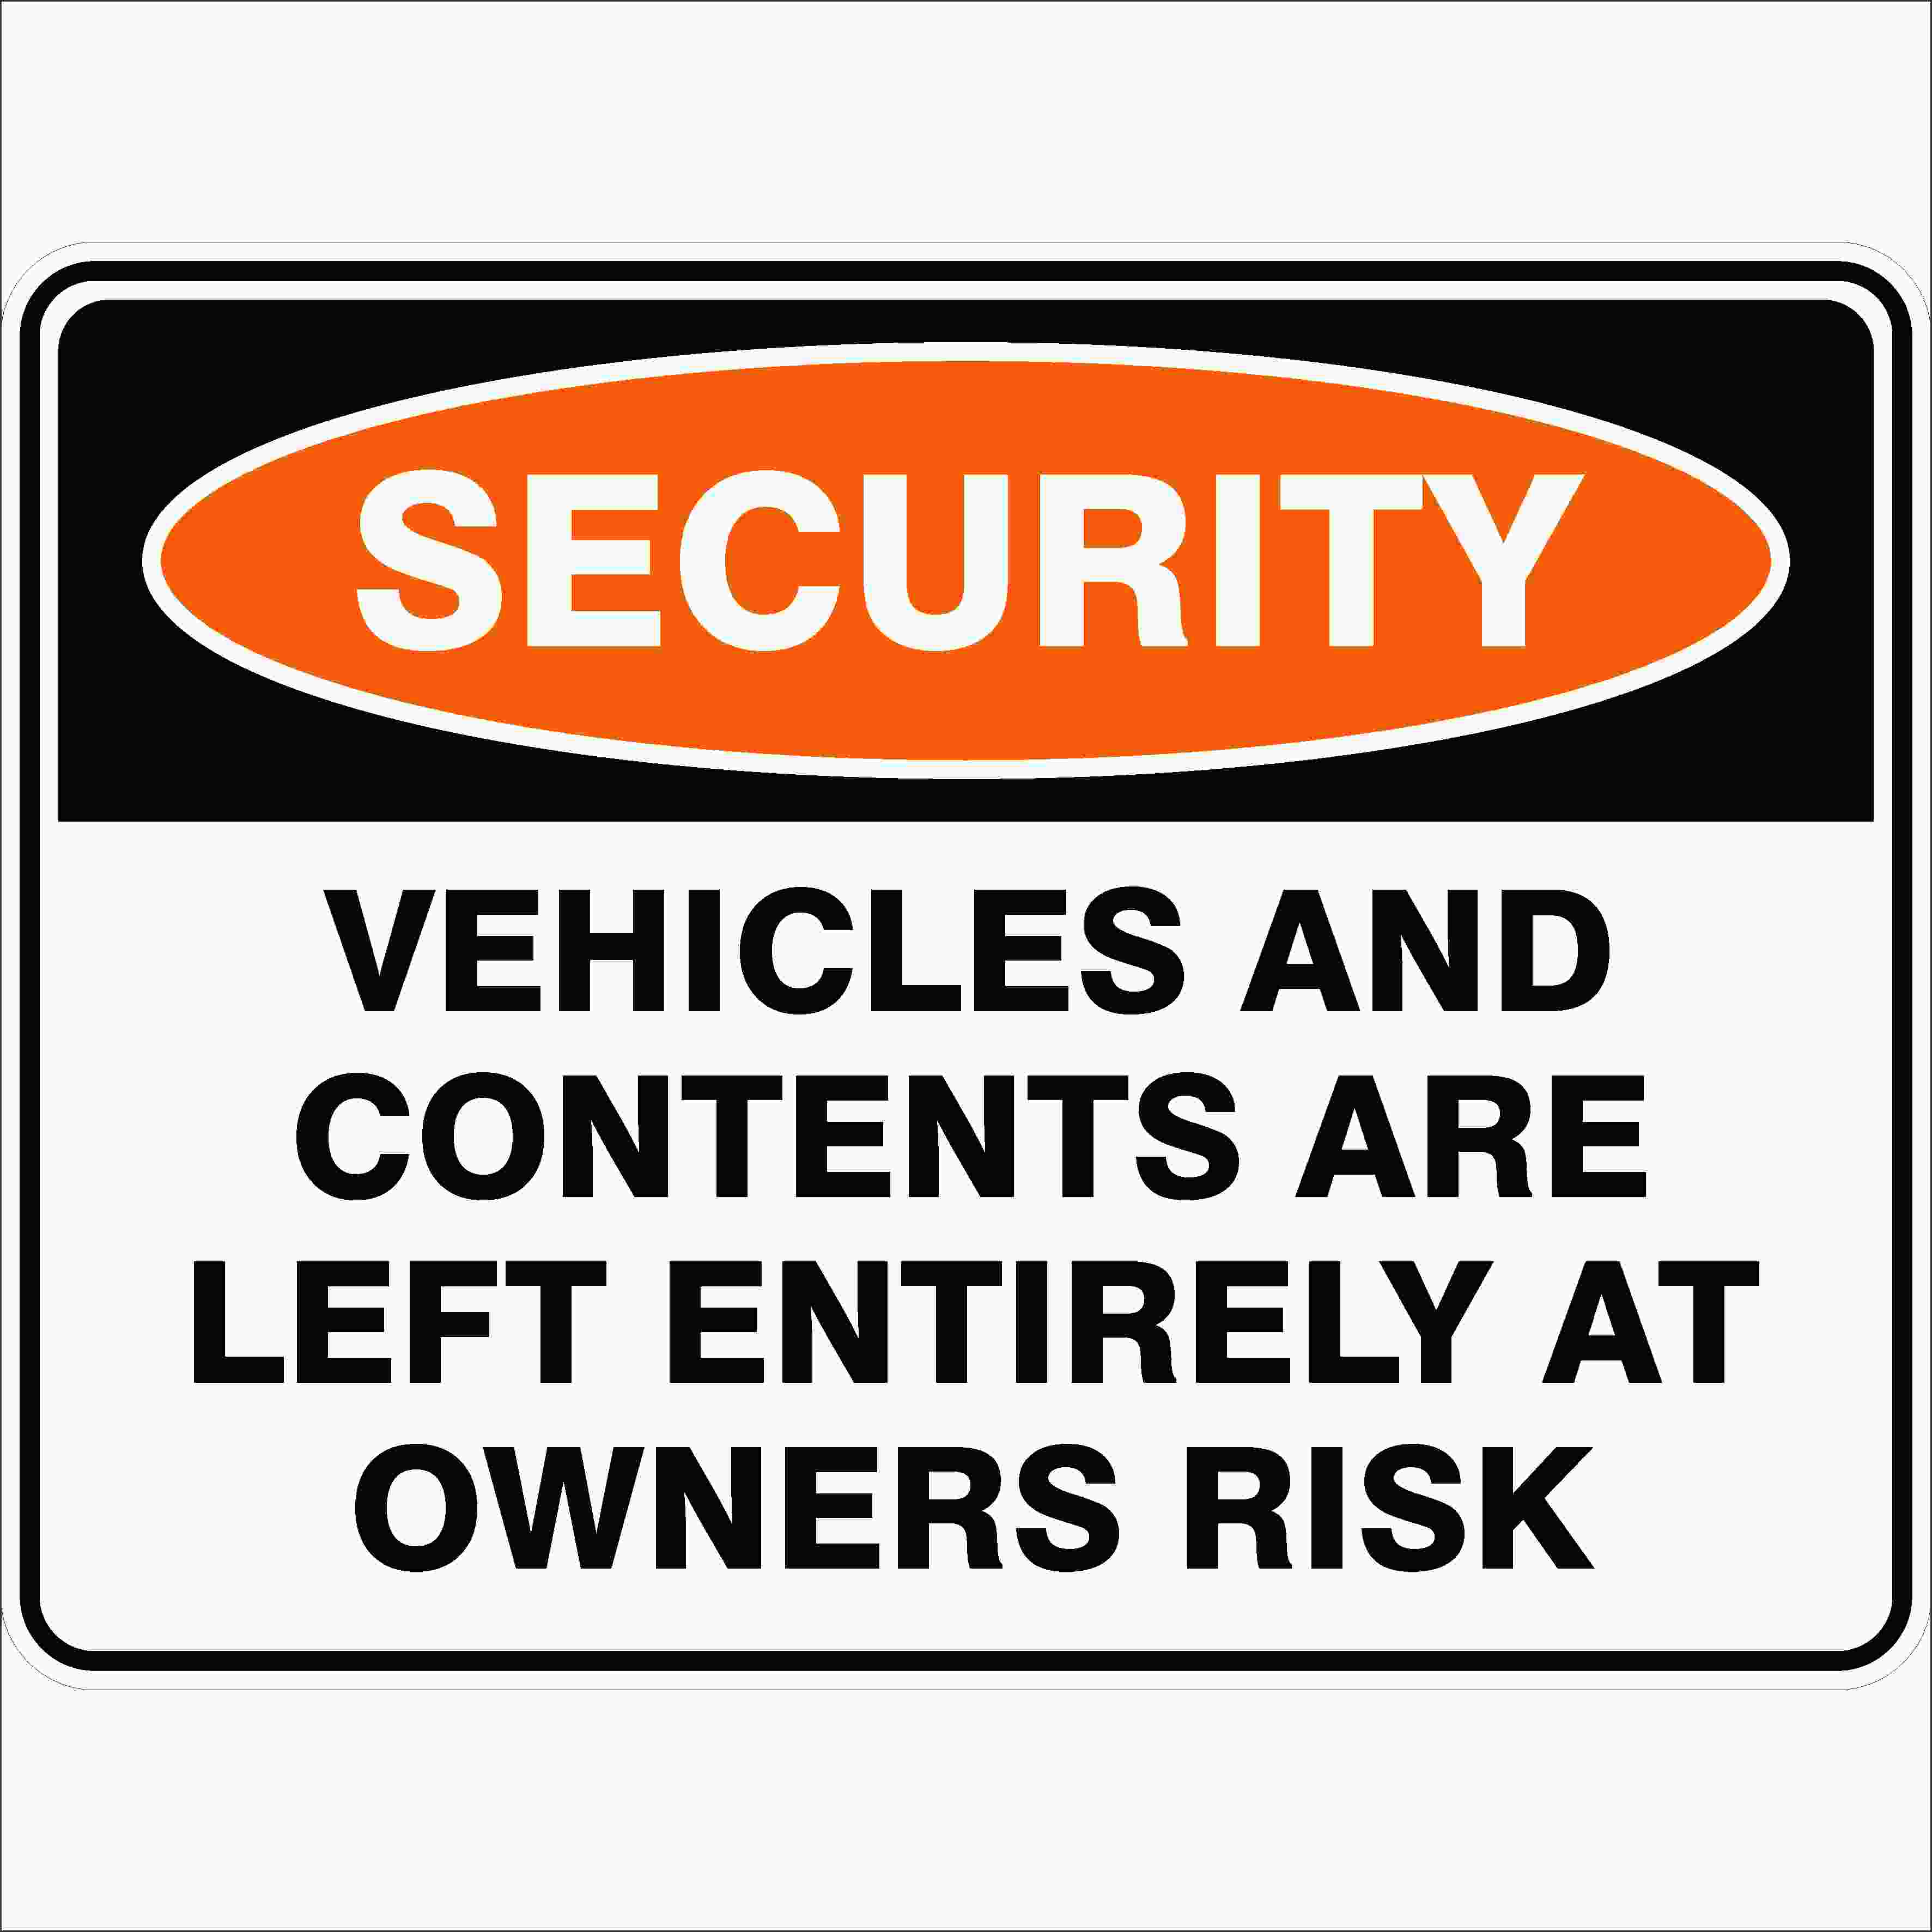 Security Signs VEHICLES AND CONTENTS ARE LEFT ENTIRELY AT OWNERS RISK